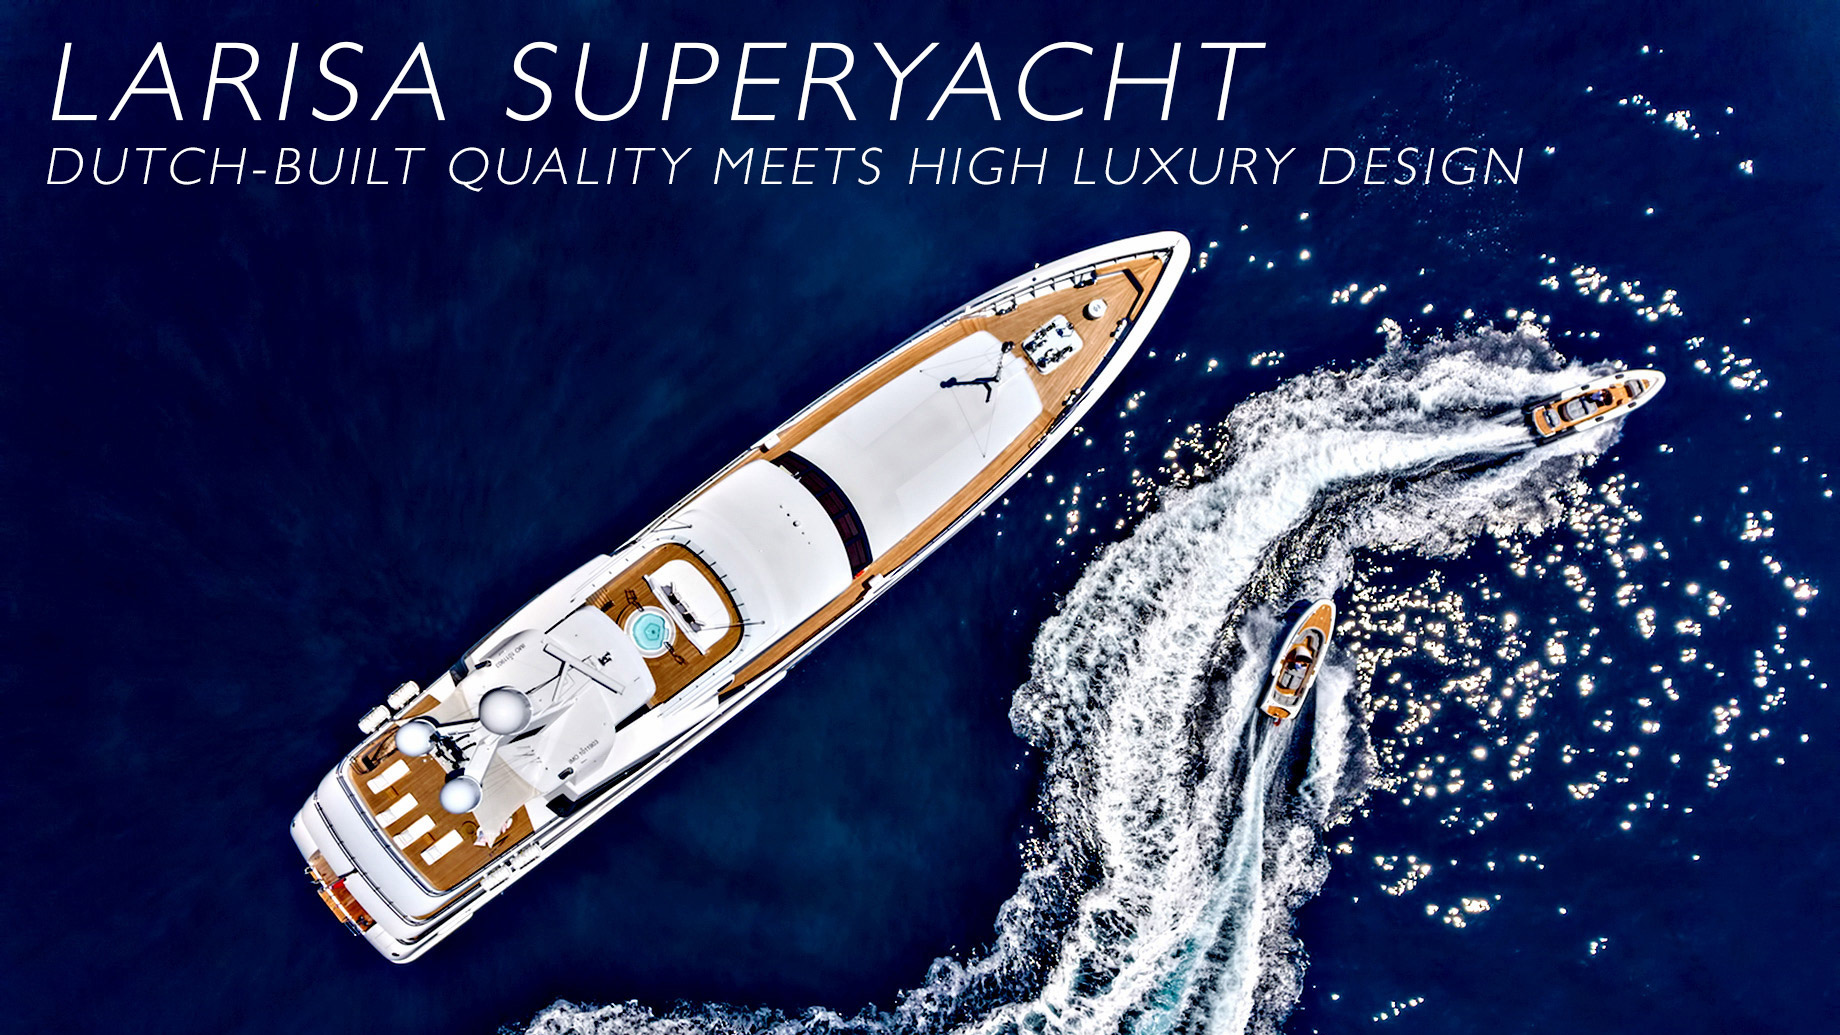 $57.60 Million LARISA Superyacht - Dutch-Built Quality Meets High Luxury Design